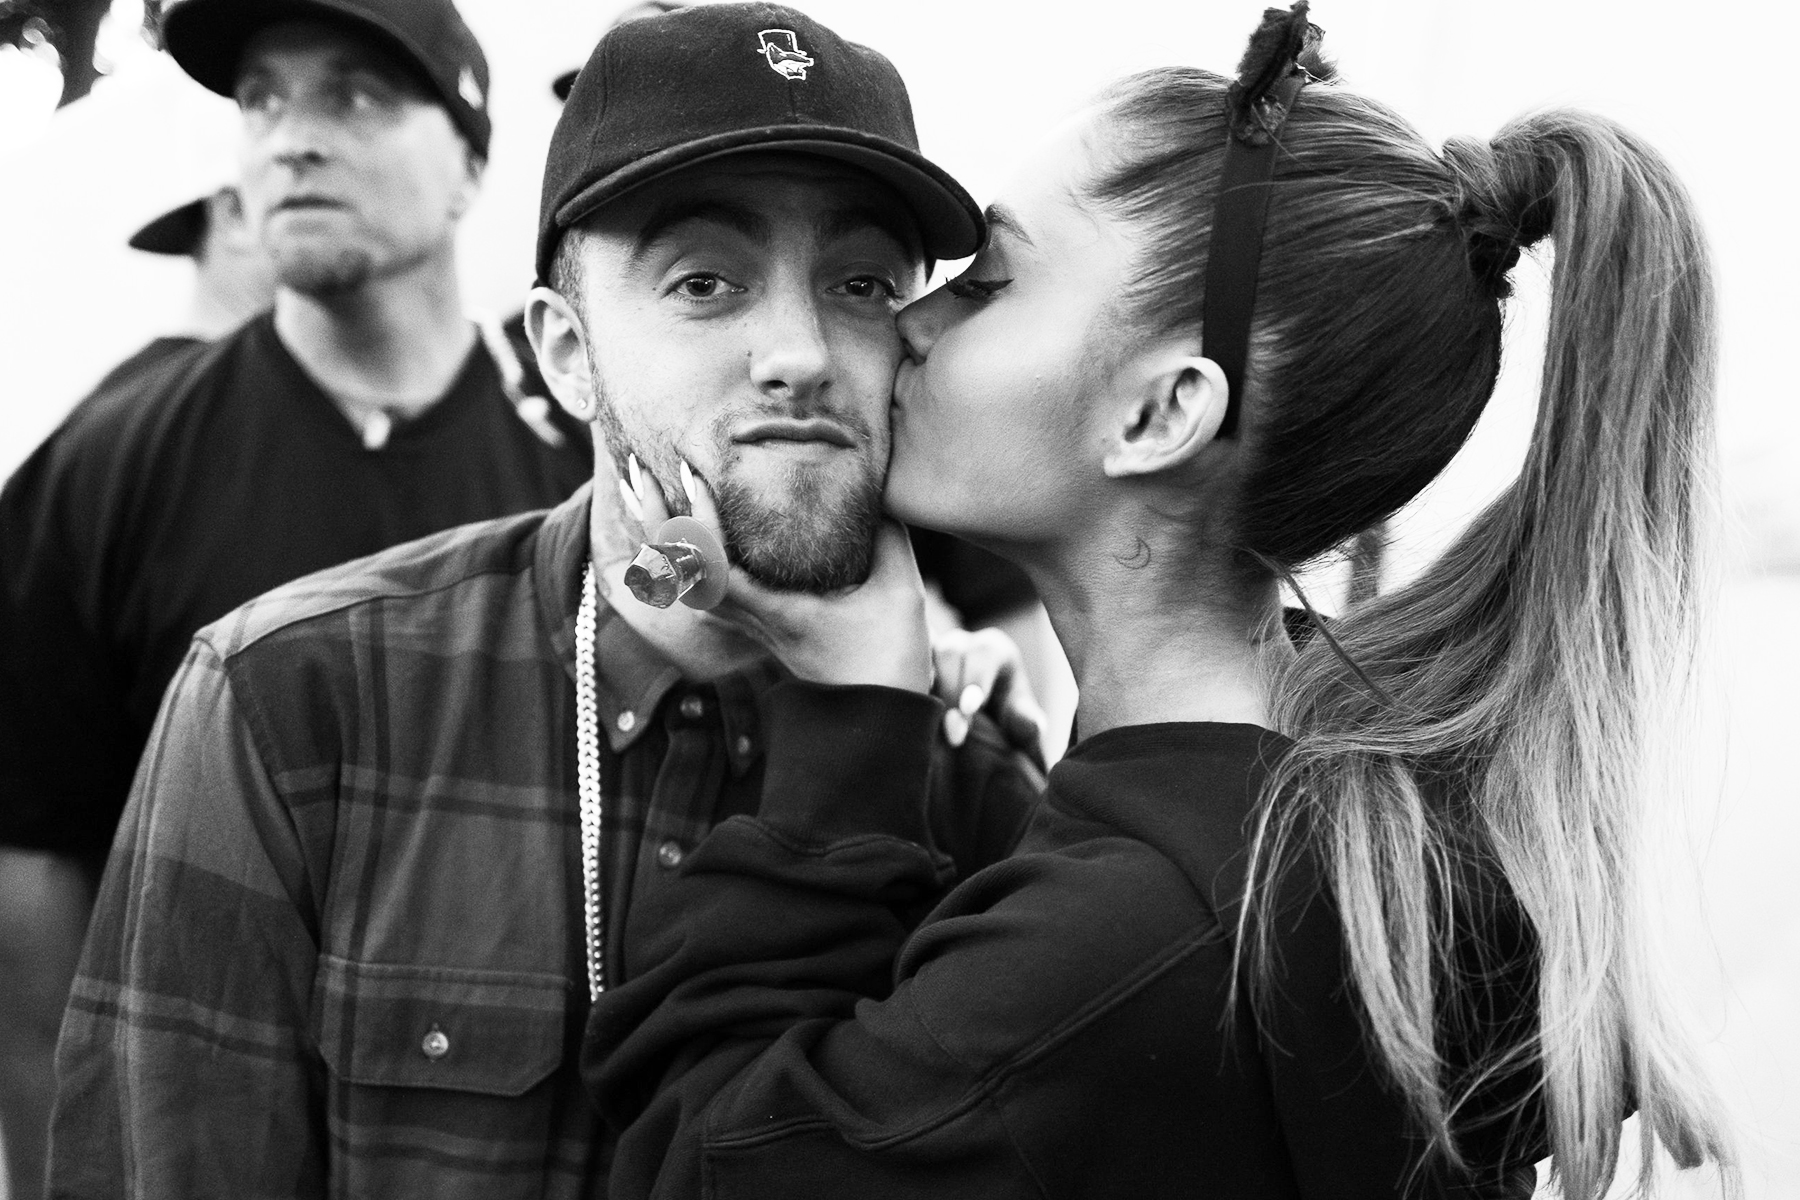 'You Did This To Him': Ariana Grande, Mac Miller and the Demonization of Women in Toxic Relationships